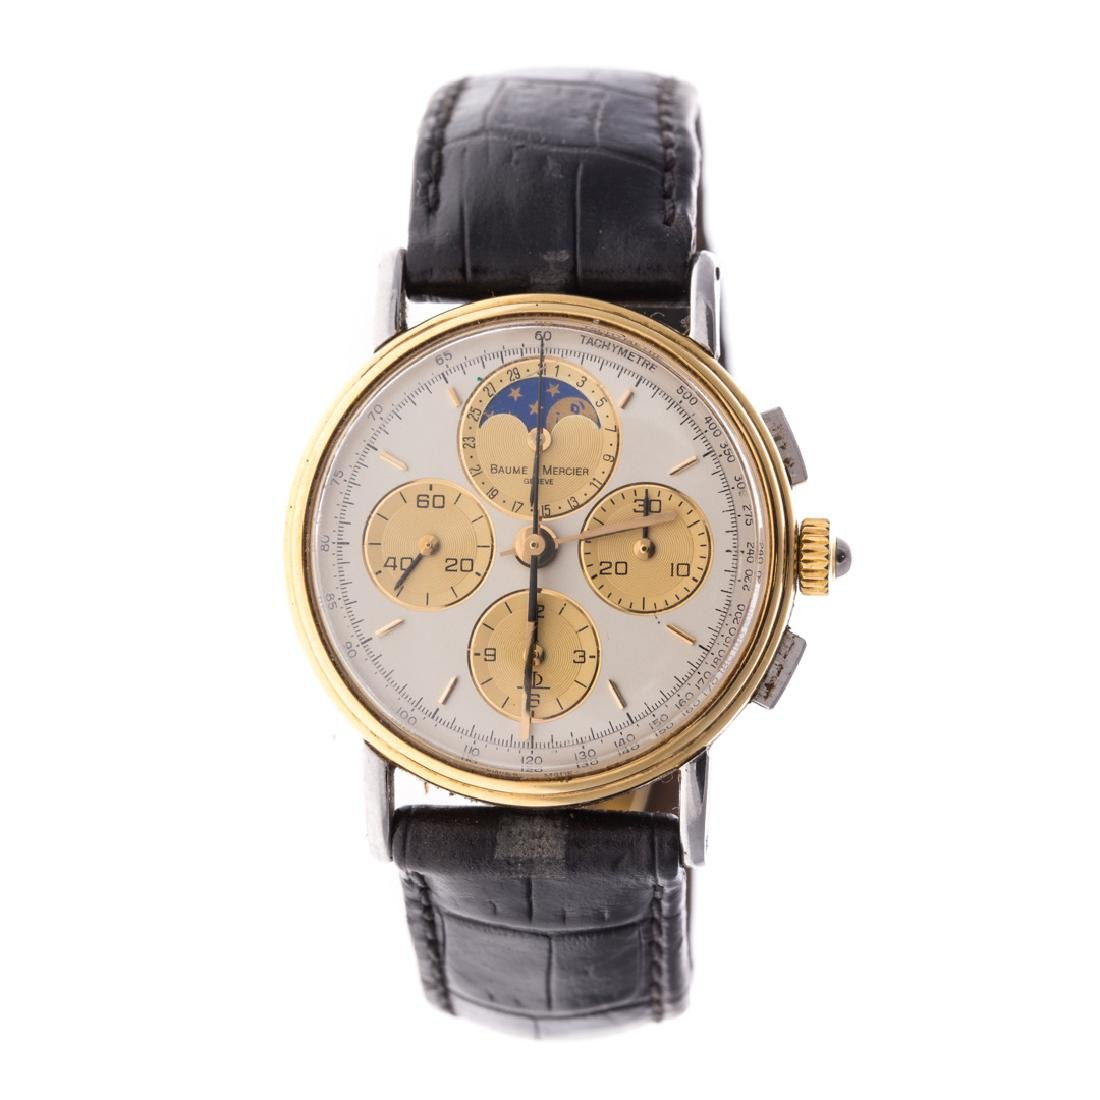 A Gent's Baume & Mercier Moonphase Chronograph